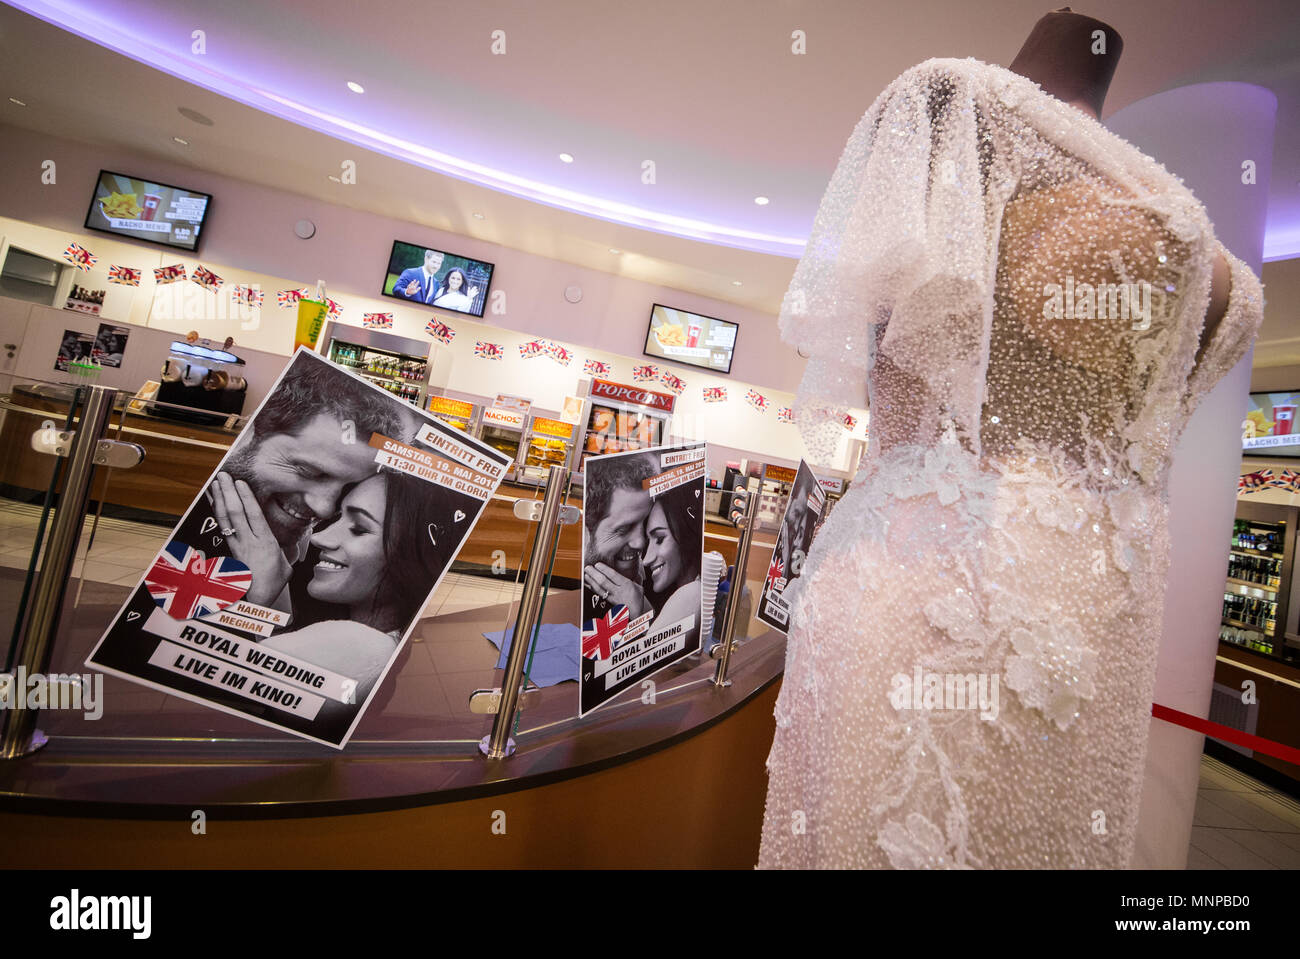 Stuttgart, Germany, 19 May 2018. Advertising posters inform cinema visitors about the royal wedding of Prince Harry and Meghan Markle, which they can watch for free at the Gloria cinema. Photo: Christoph Schmidt/dpa Credit: dpa picture alliance/Alamy Live News - Stock Image